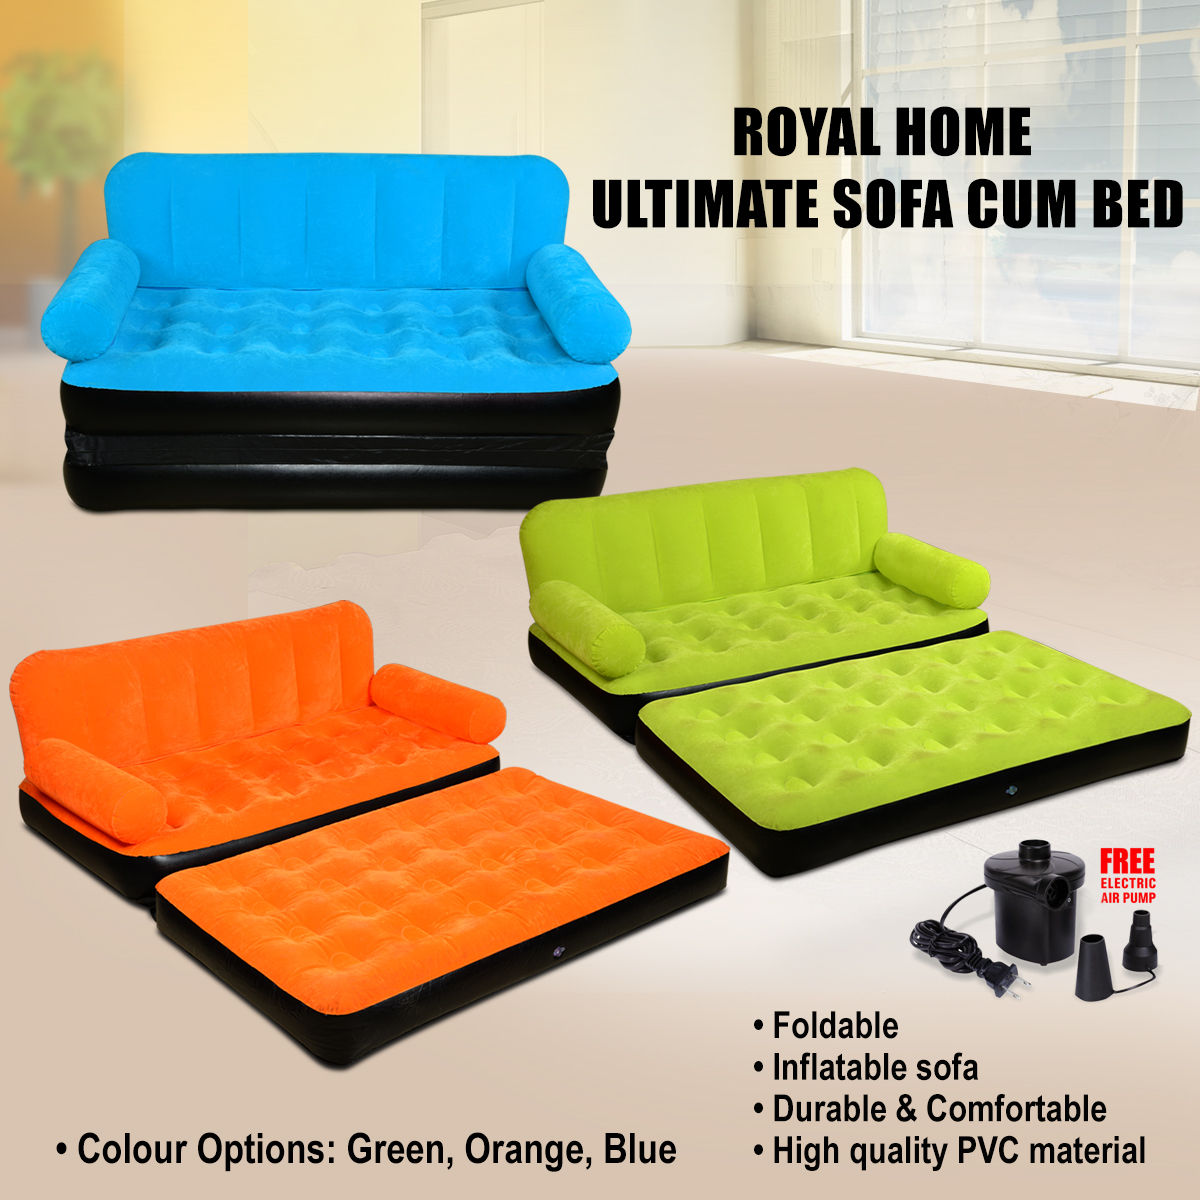 buy royal home ultimate sofa cum bed online at best price in india